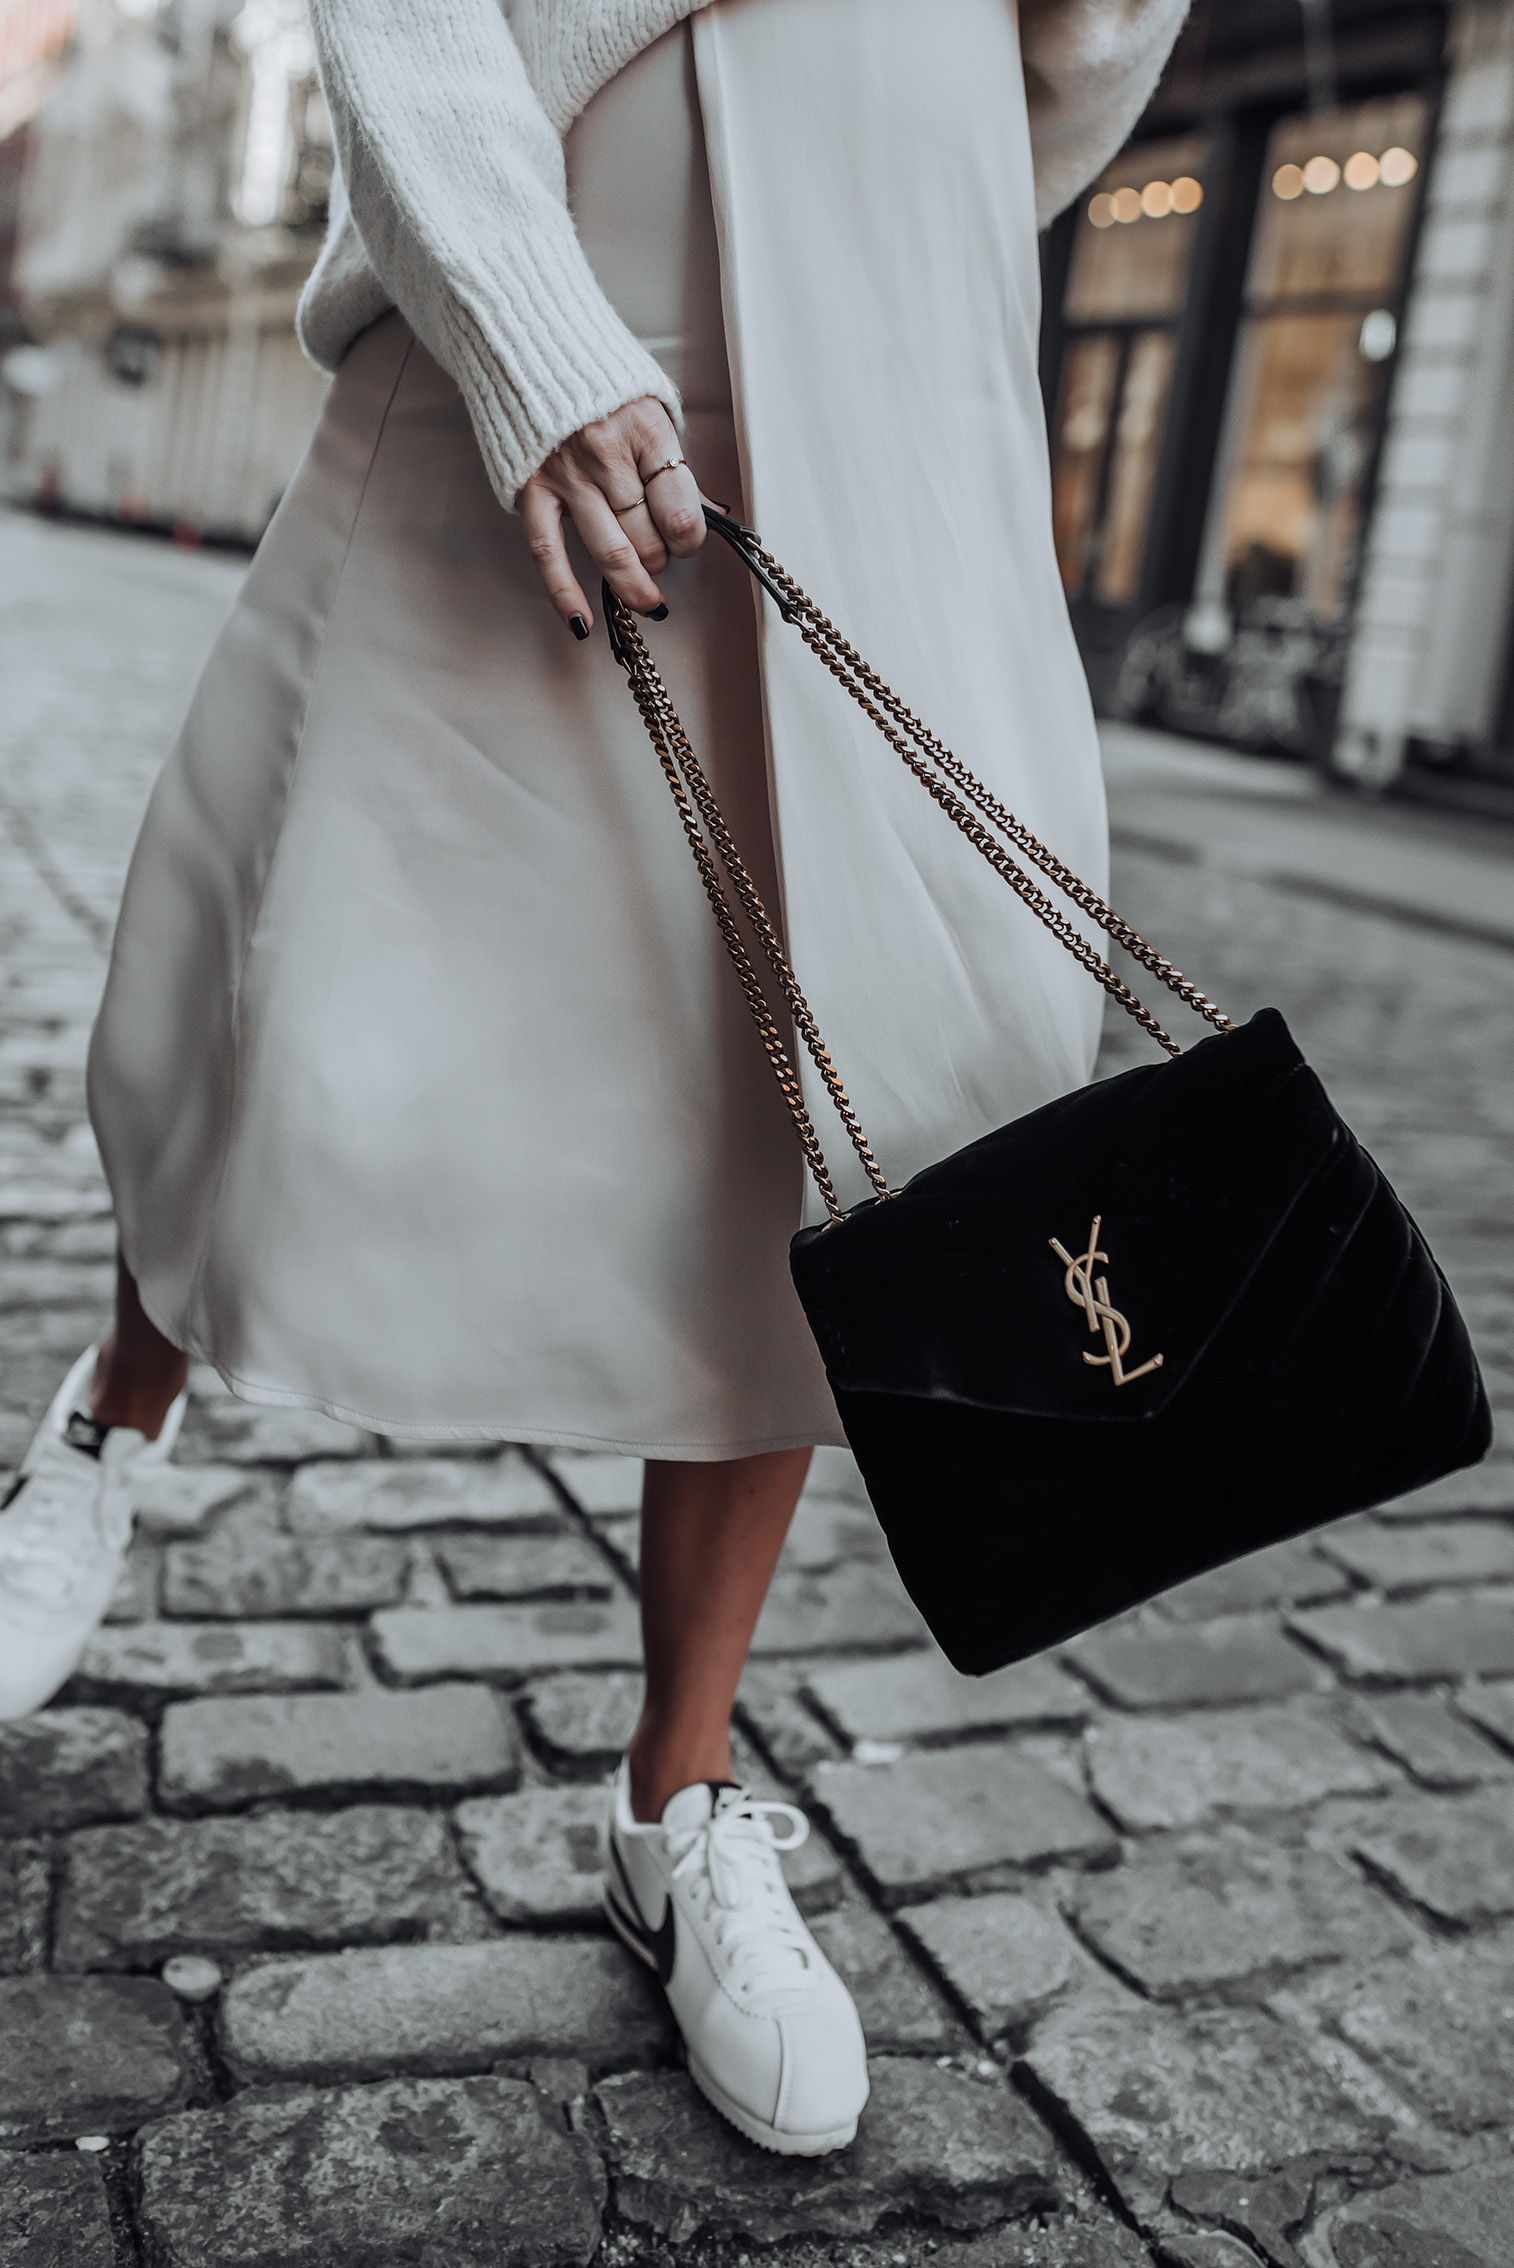 Neutrals |Skirt (Similar) | Sweater (from Mango but sold out, similar here and here) | Nike Cortez | YSL Bag #liketkit #nikecortez # yslbag #streetstyle